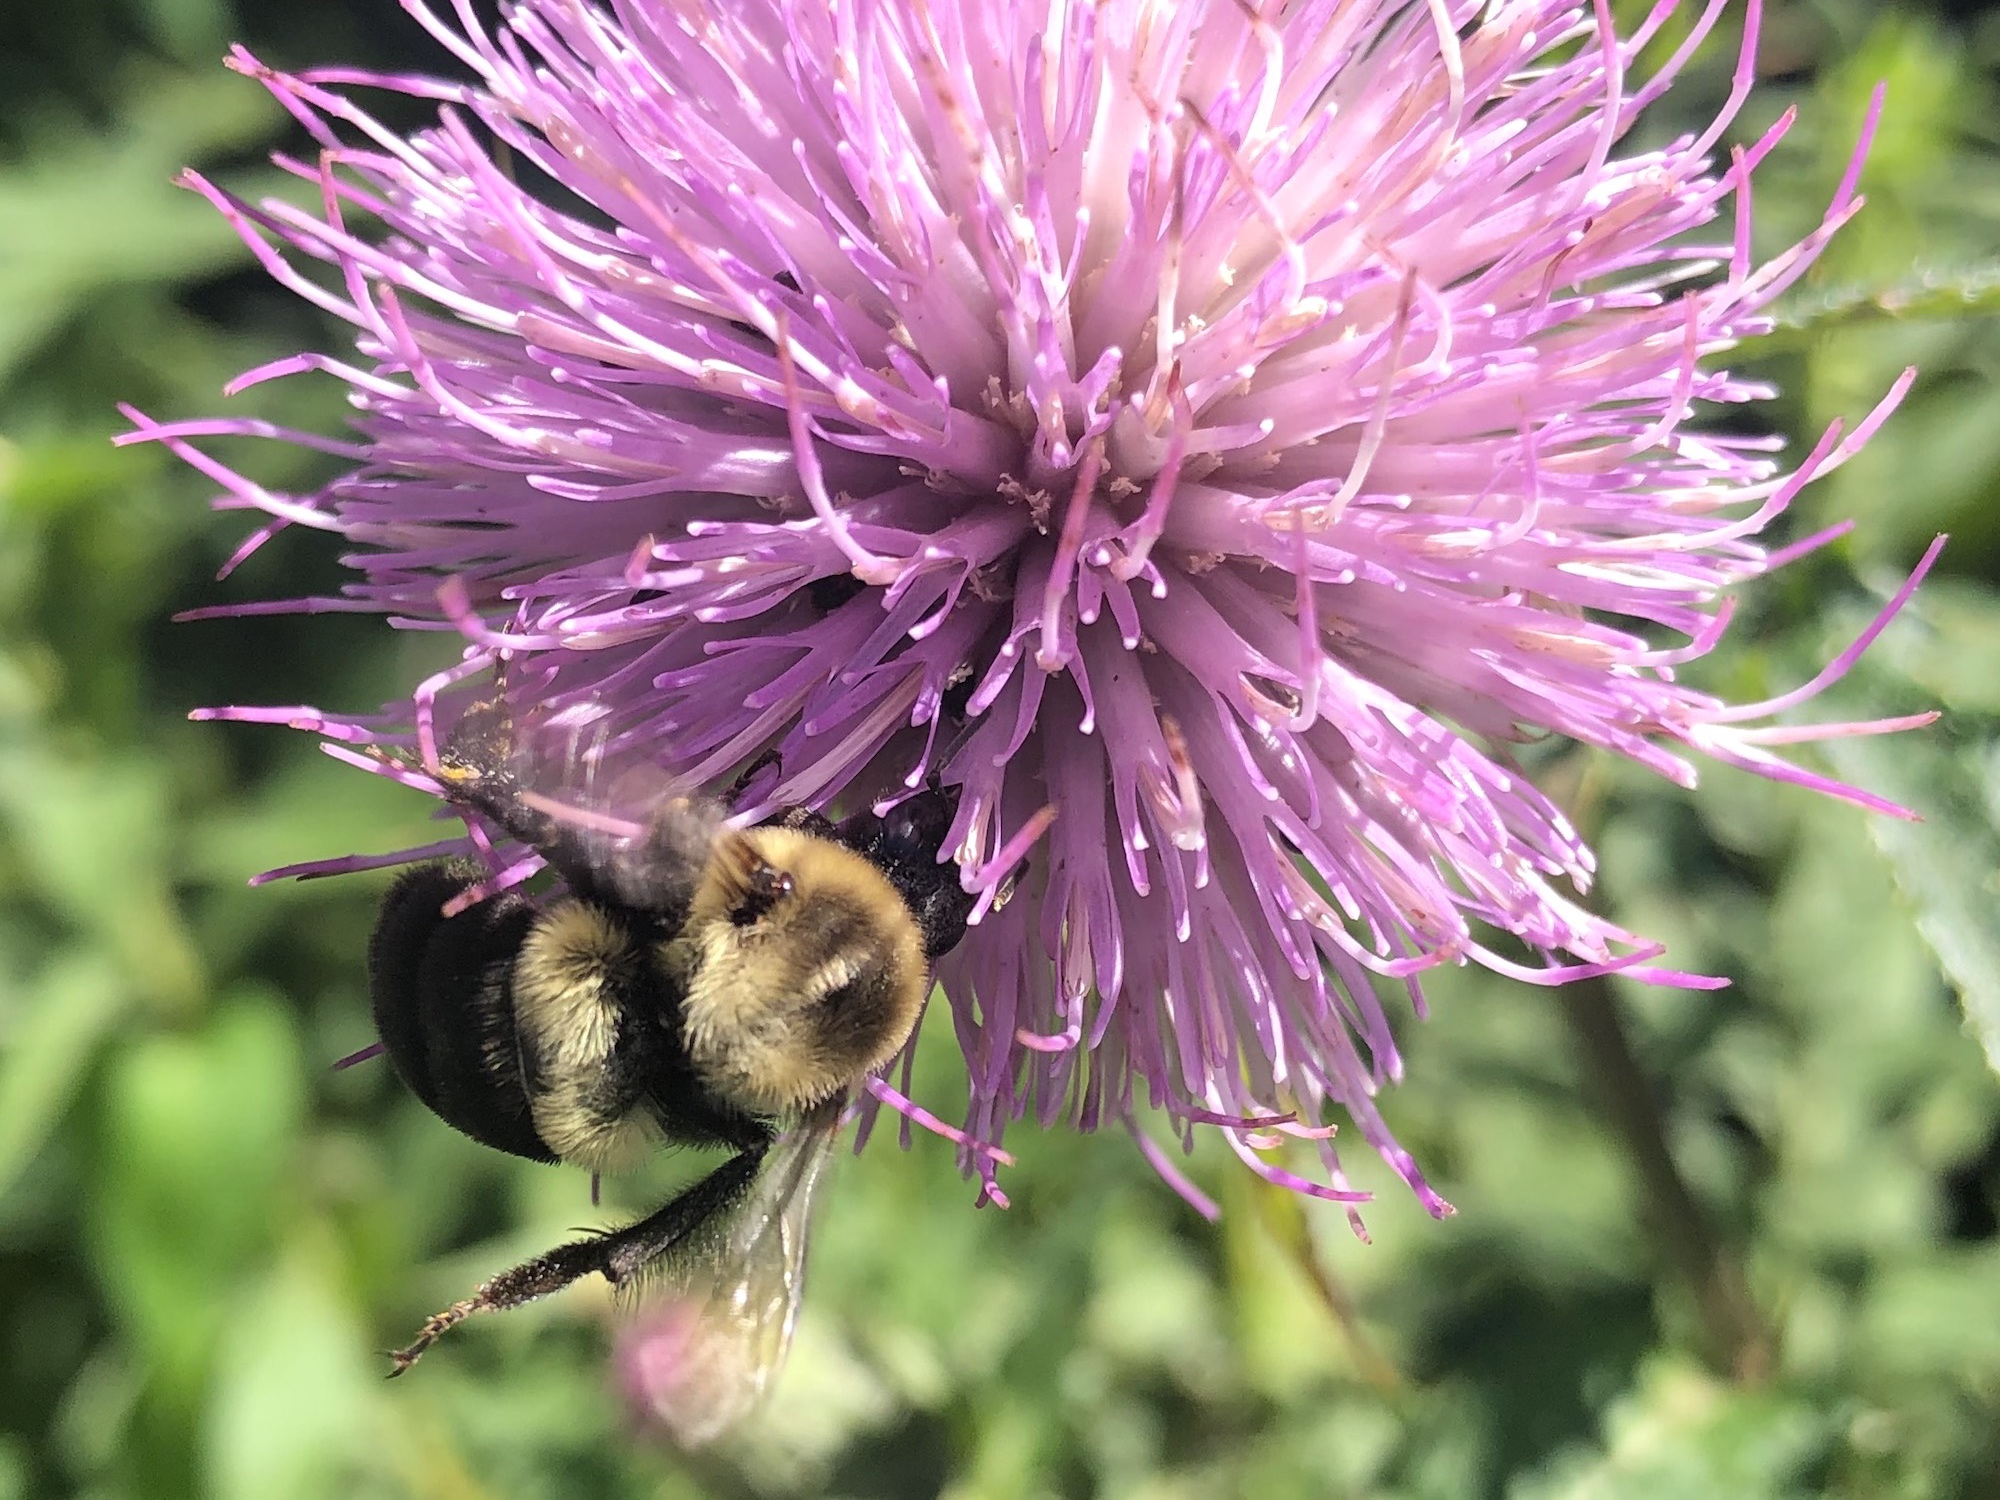 Bumblebee on Thistle on August 11, 2020.